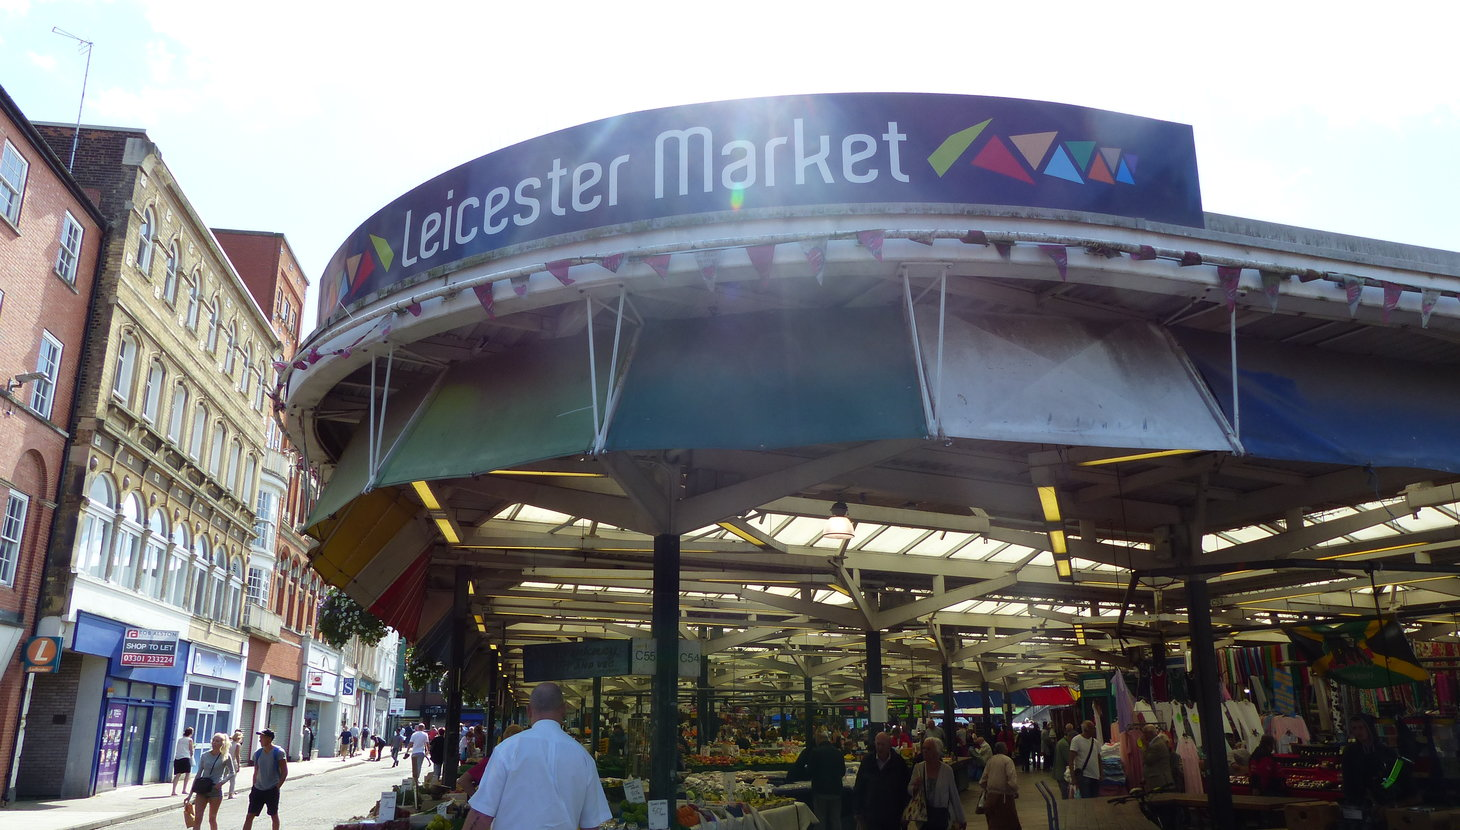 rsz_leicester_market